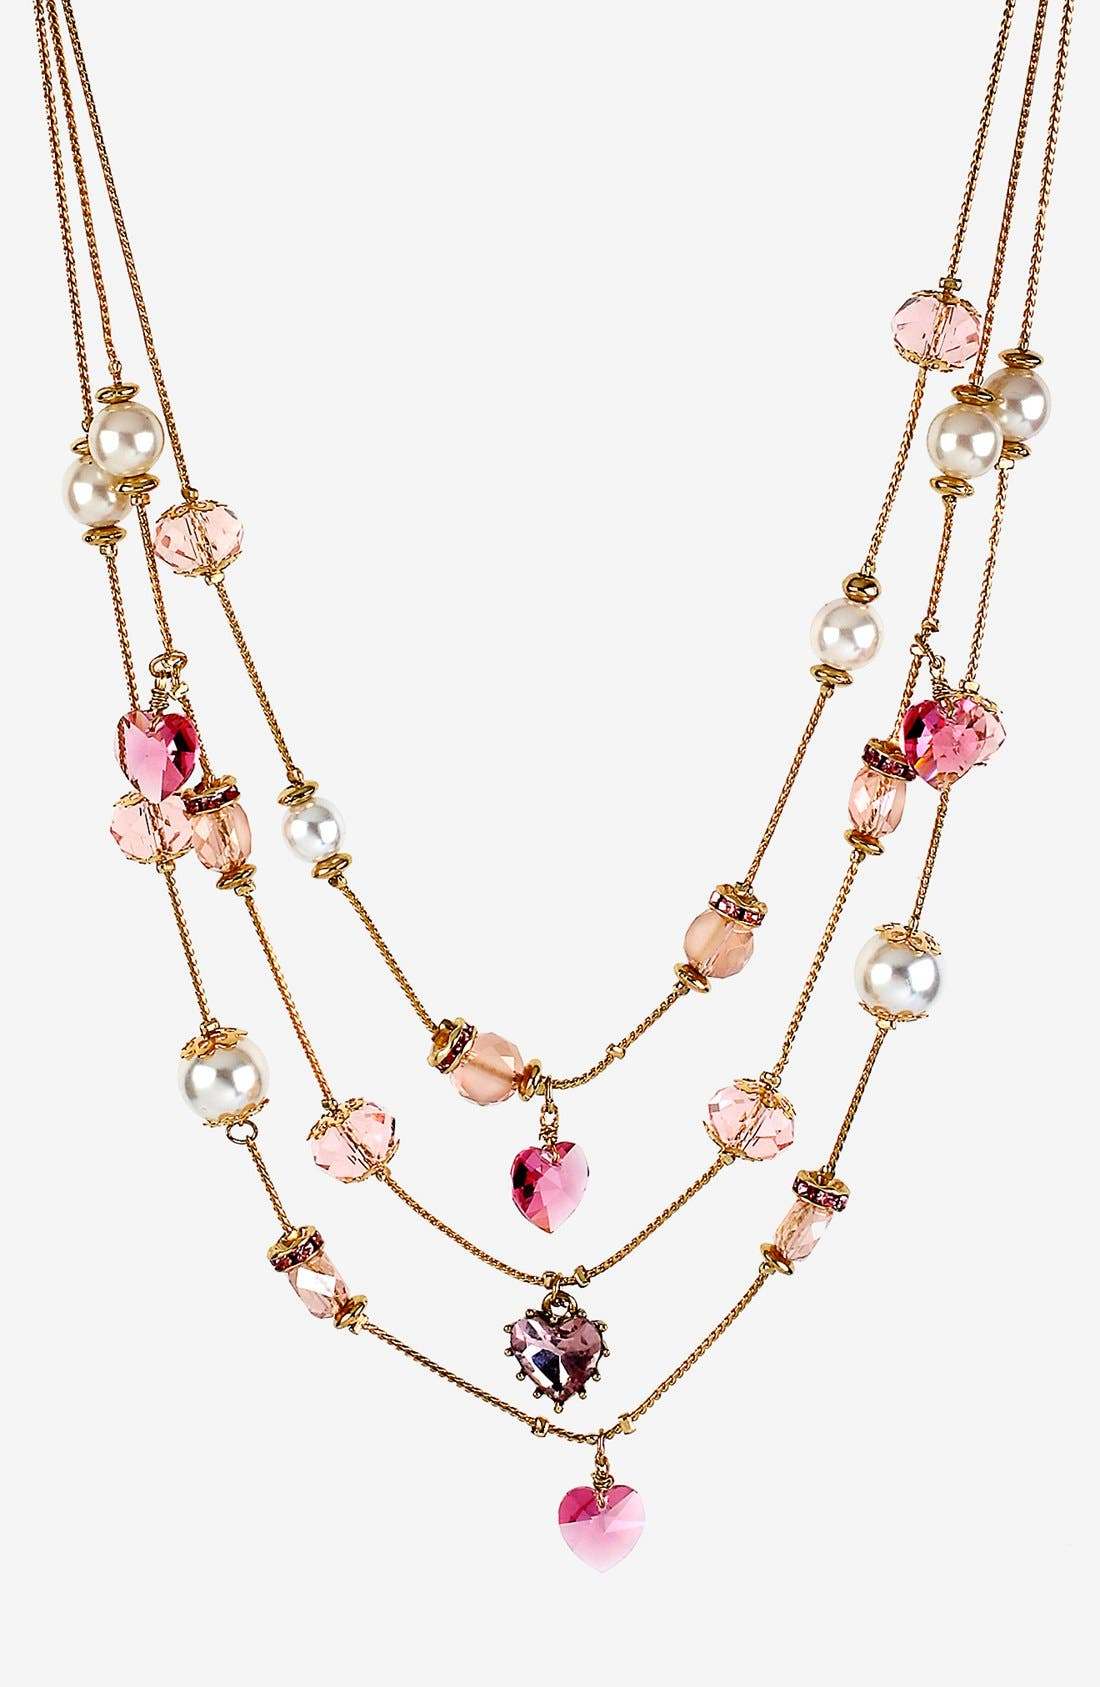 Alternate Image 1 Selected - Betsey Johnson 'Iconic Pinkalicious' Multistrand Necklace